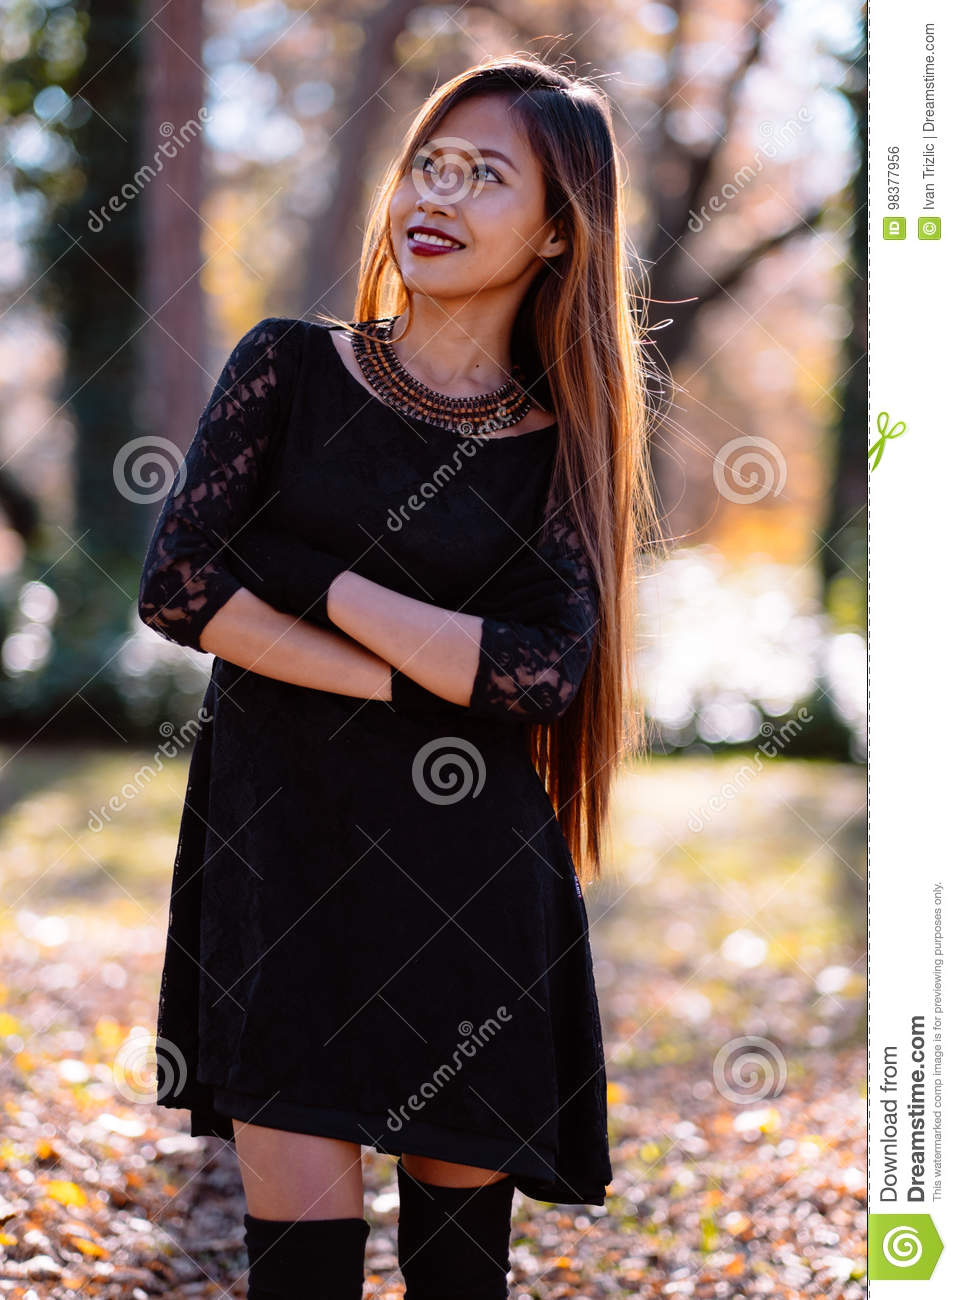 Happy young woman in park on sunny autumn day, smiling. Cheerful beautiful girl in black retro dress autumn fashion style